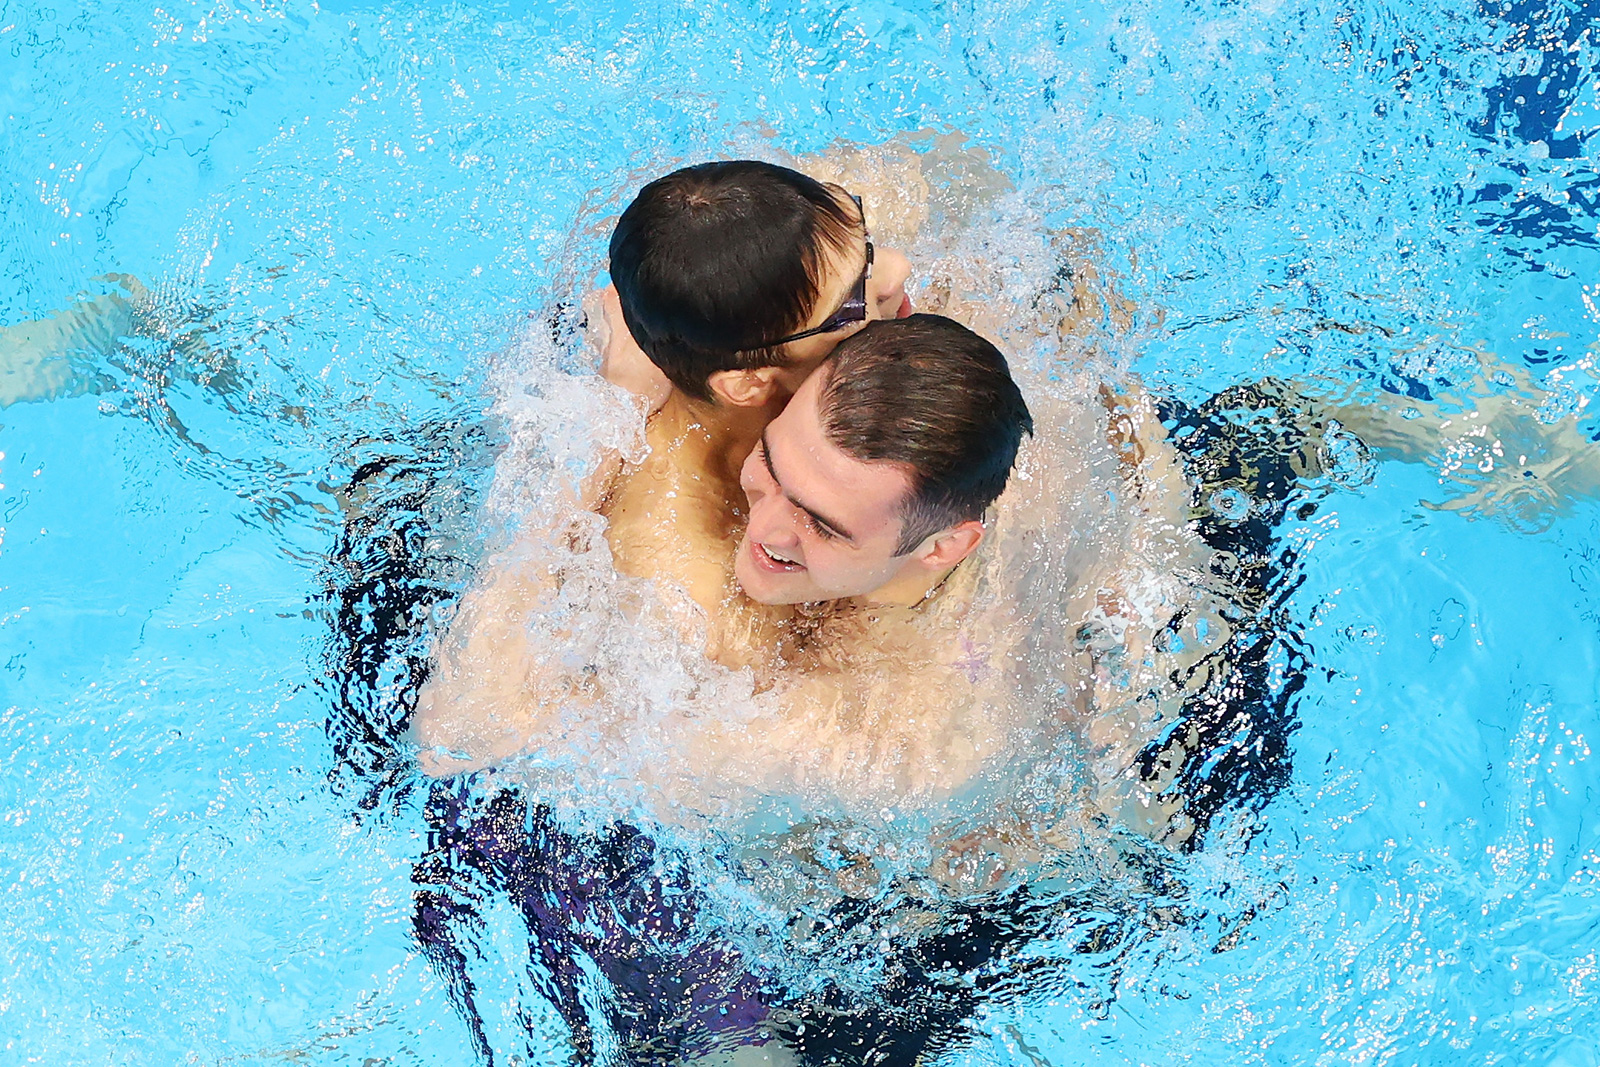 Russian swimmers Evgeny Rylov andKliment Kolesnikov celebrate after finishing first and second respectively in the 100m backstroke final on July 27.